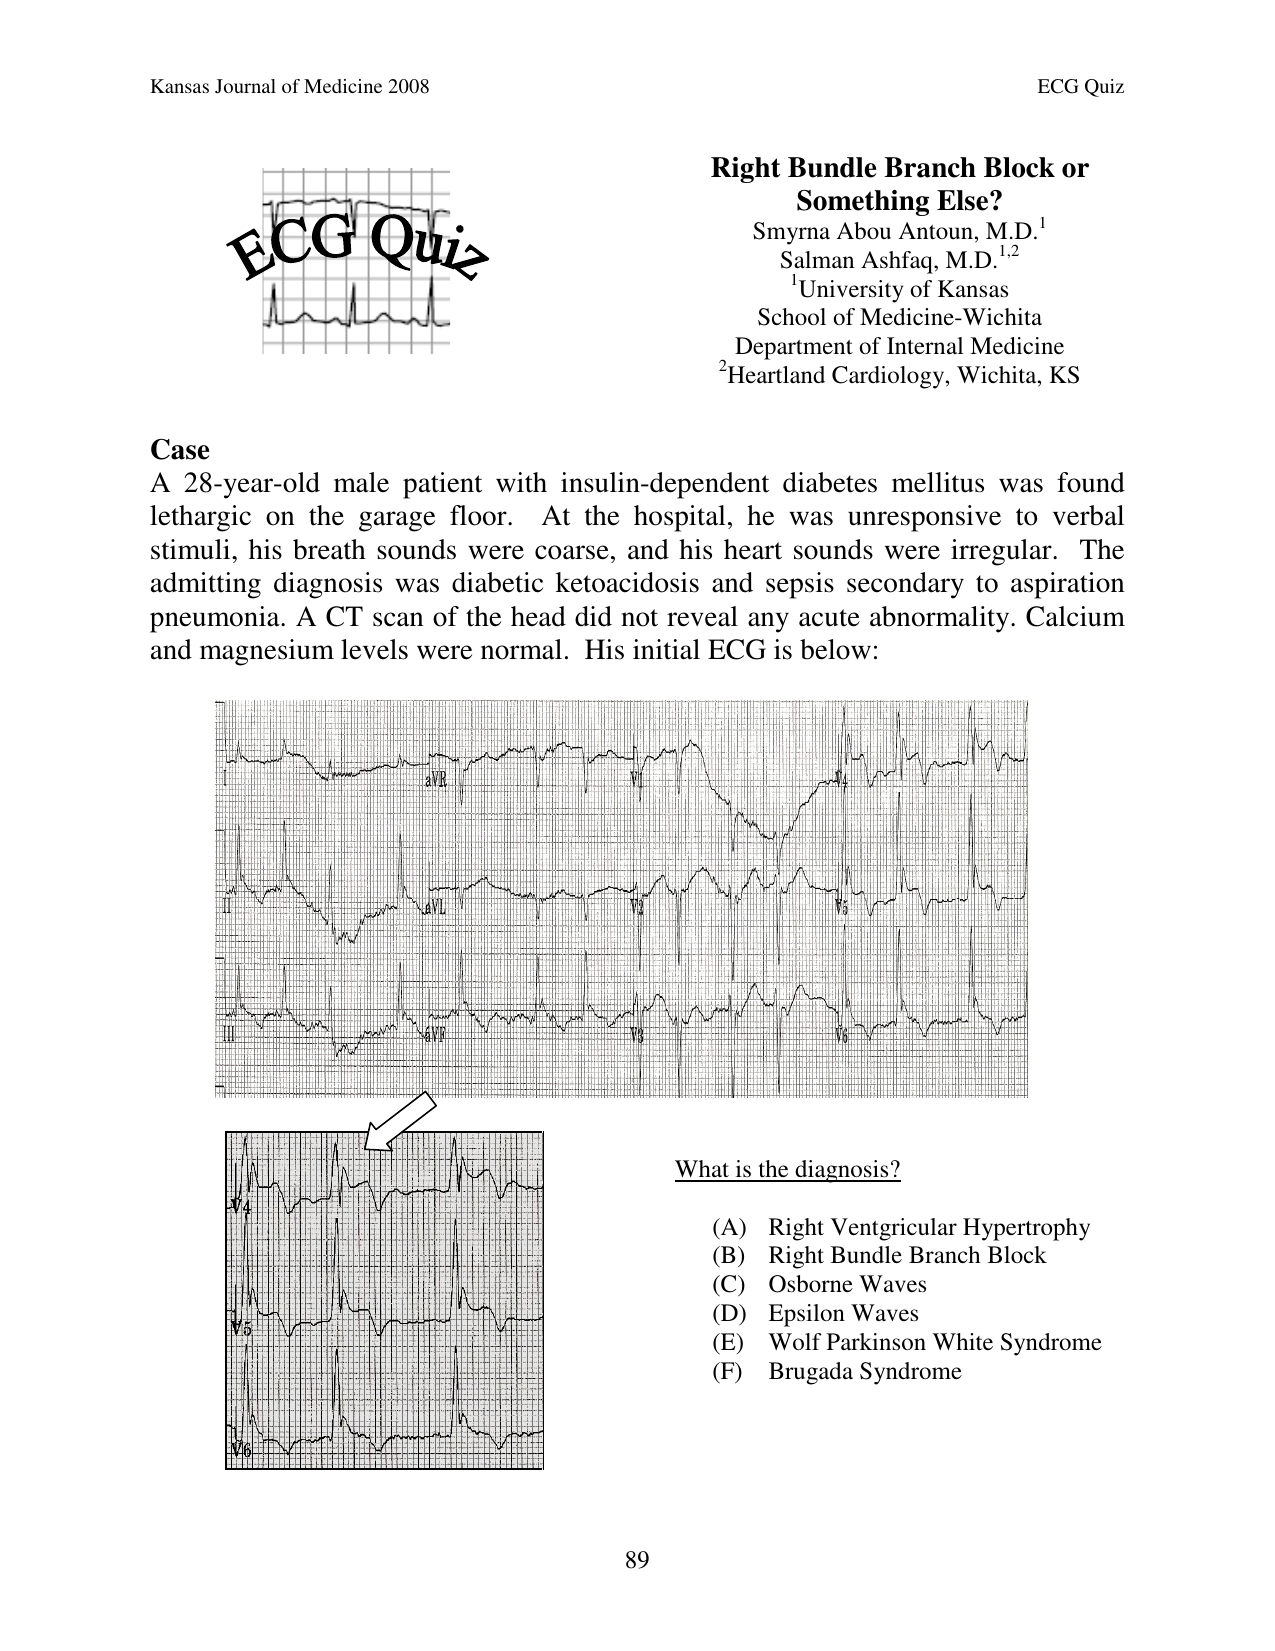 ECG: RBBB Differential Diagnosis Cheat Sheet